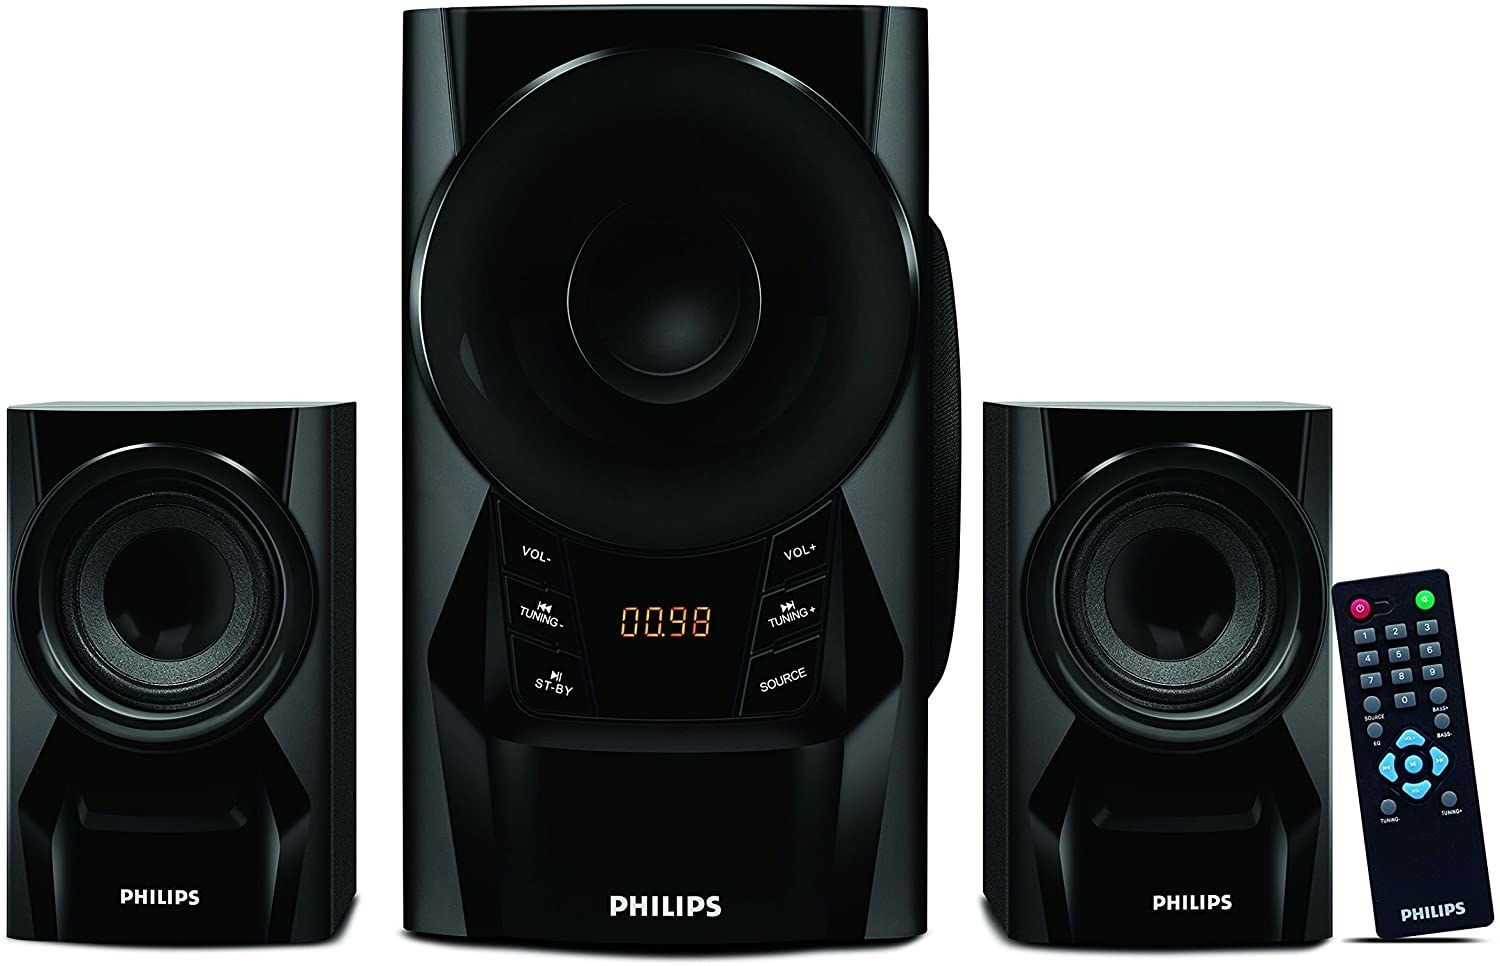 Philips IN-MMS6080B/94 speakers in black, with a remote next to it.